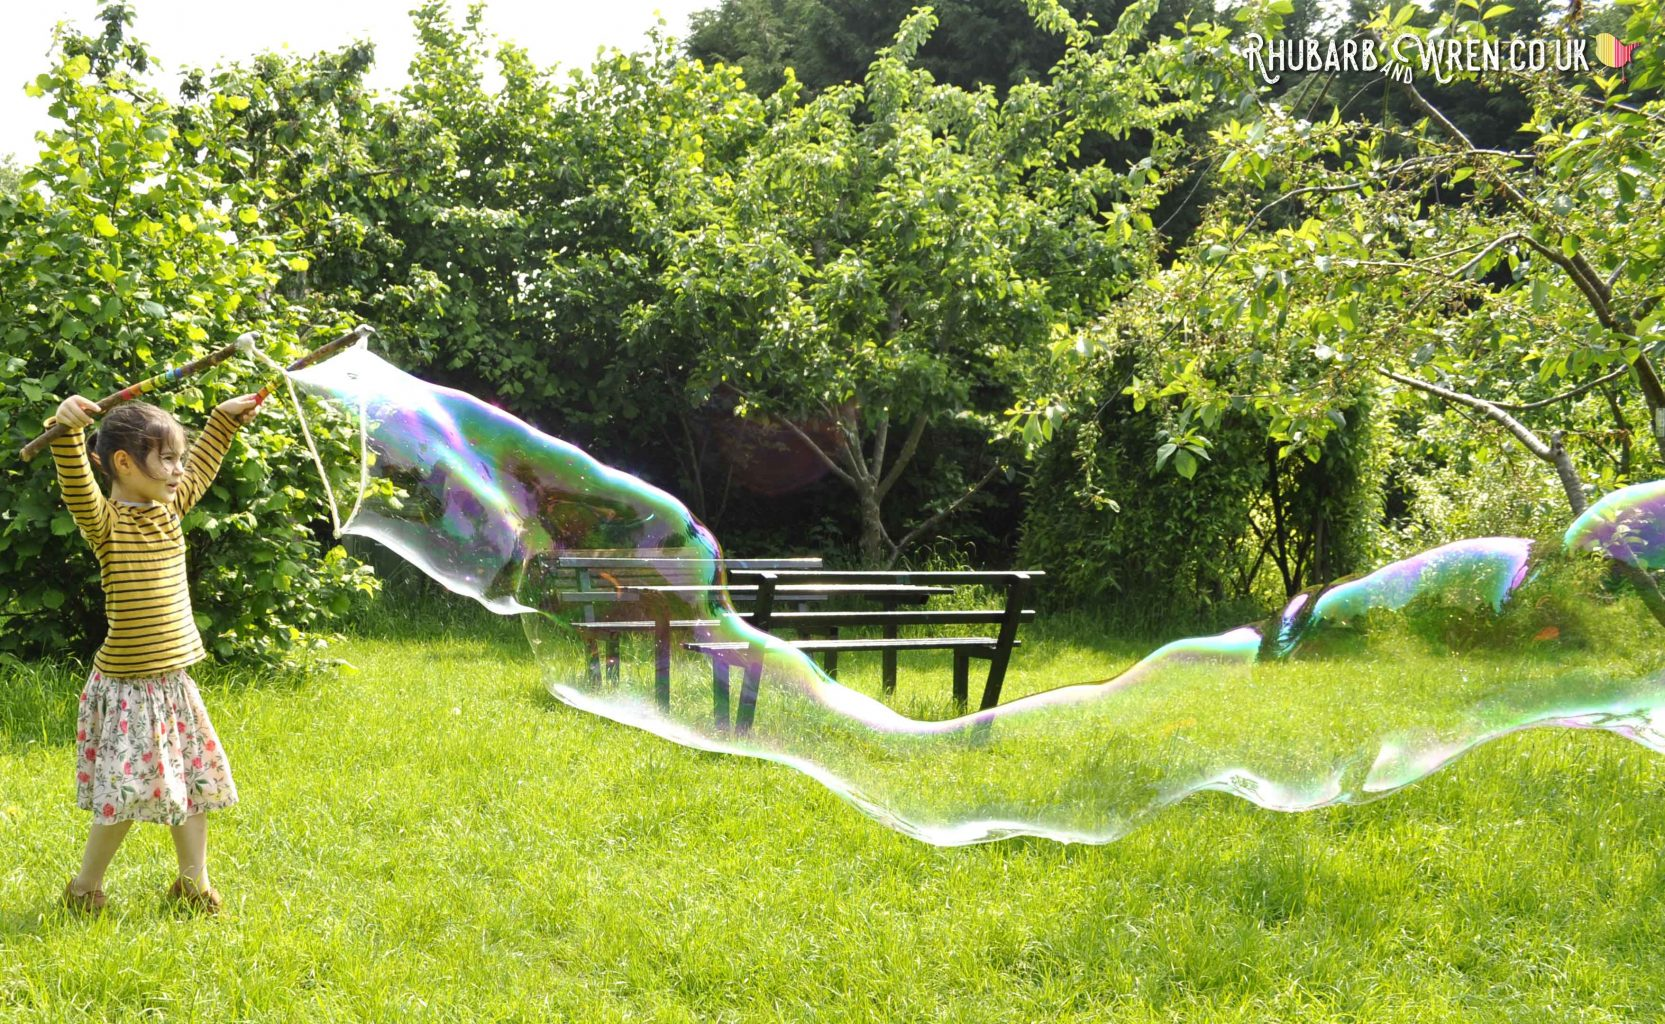 Really long bubble made with diy bubble mix recipe